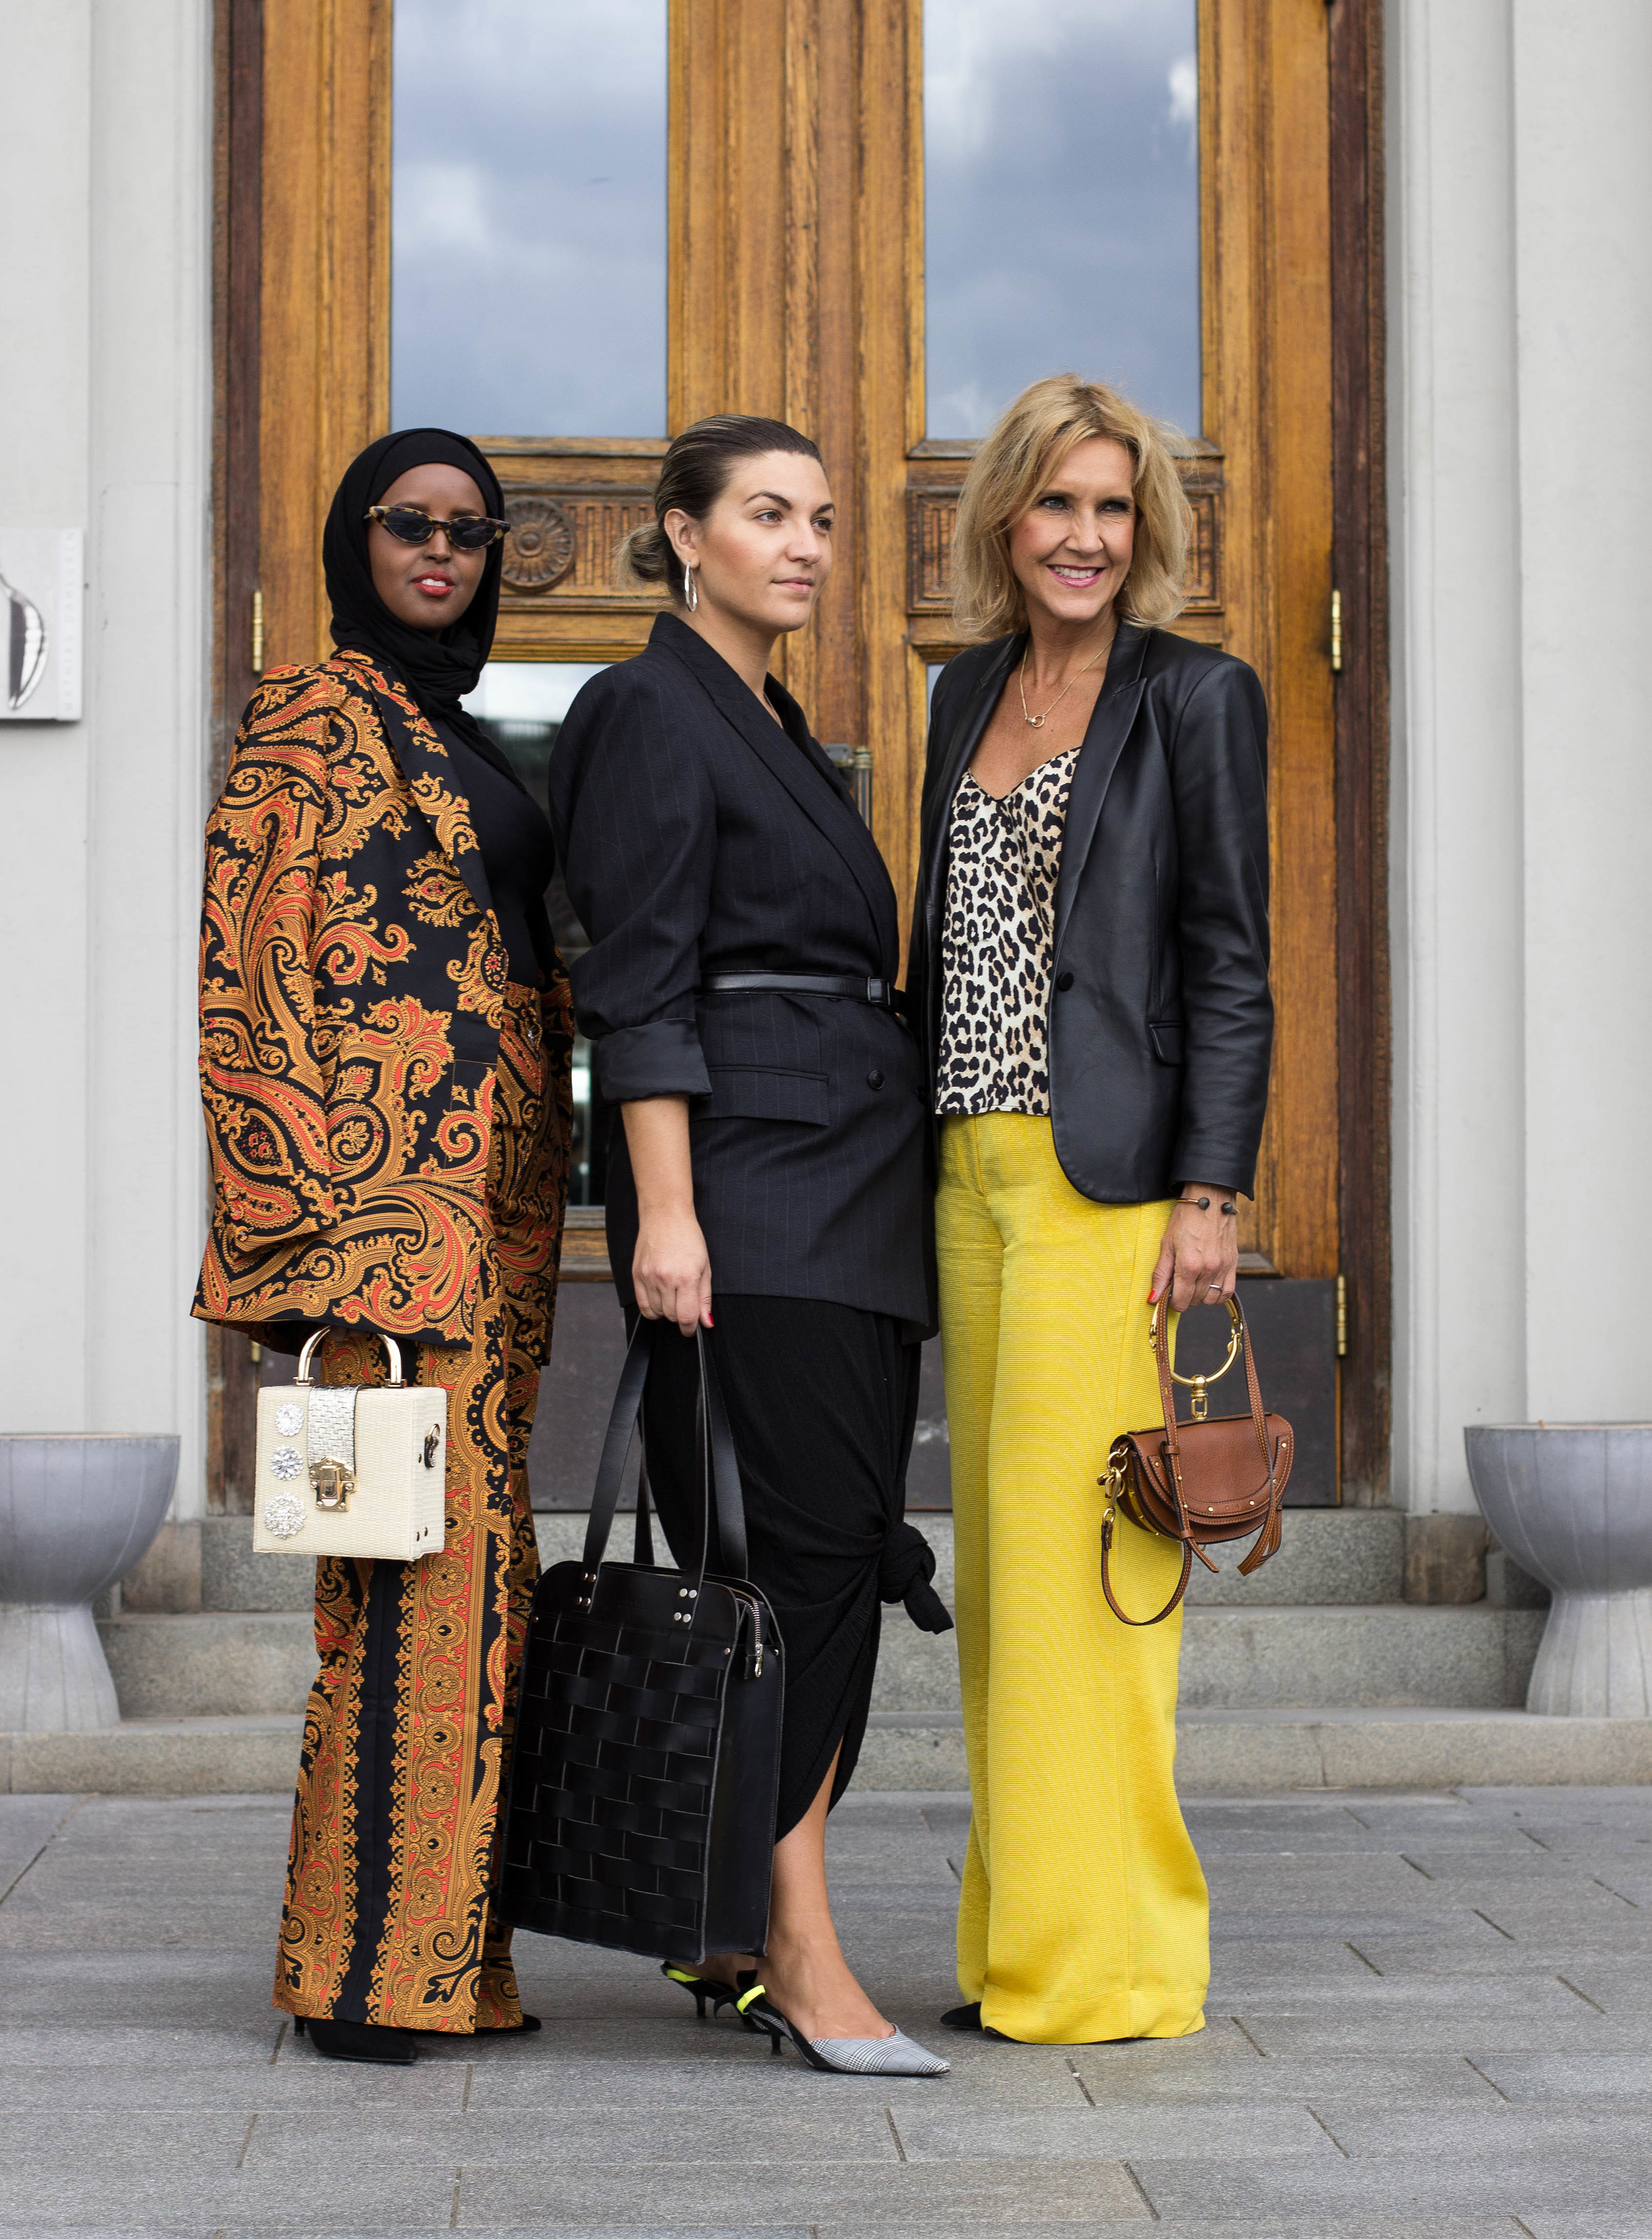 naimaosman, ninni about that look, aboutthatlook, aboutthatlookstyling, camilla runberg, whyred, stockholm fashionweek, streetstyle